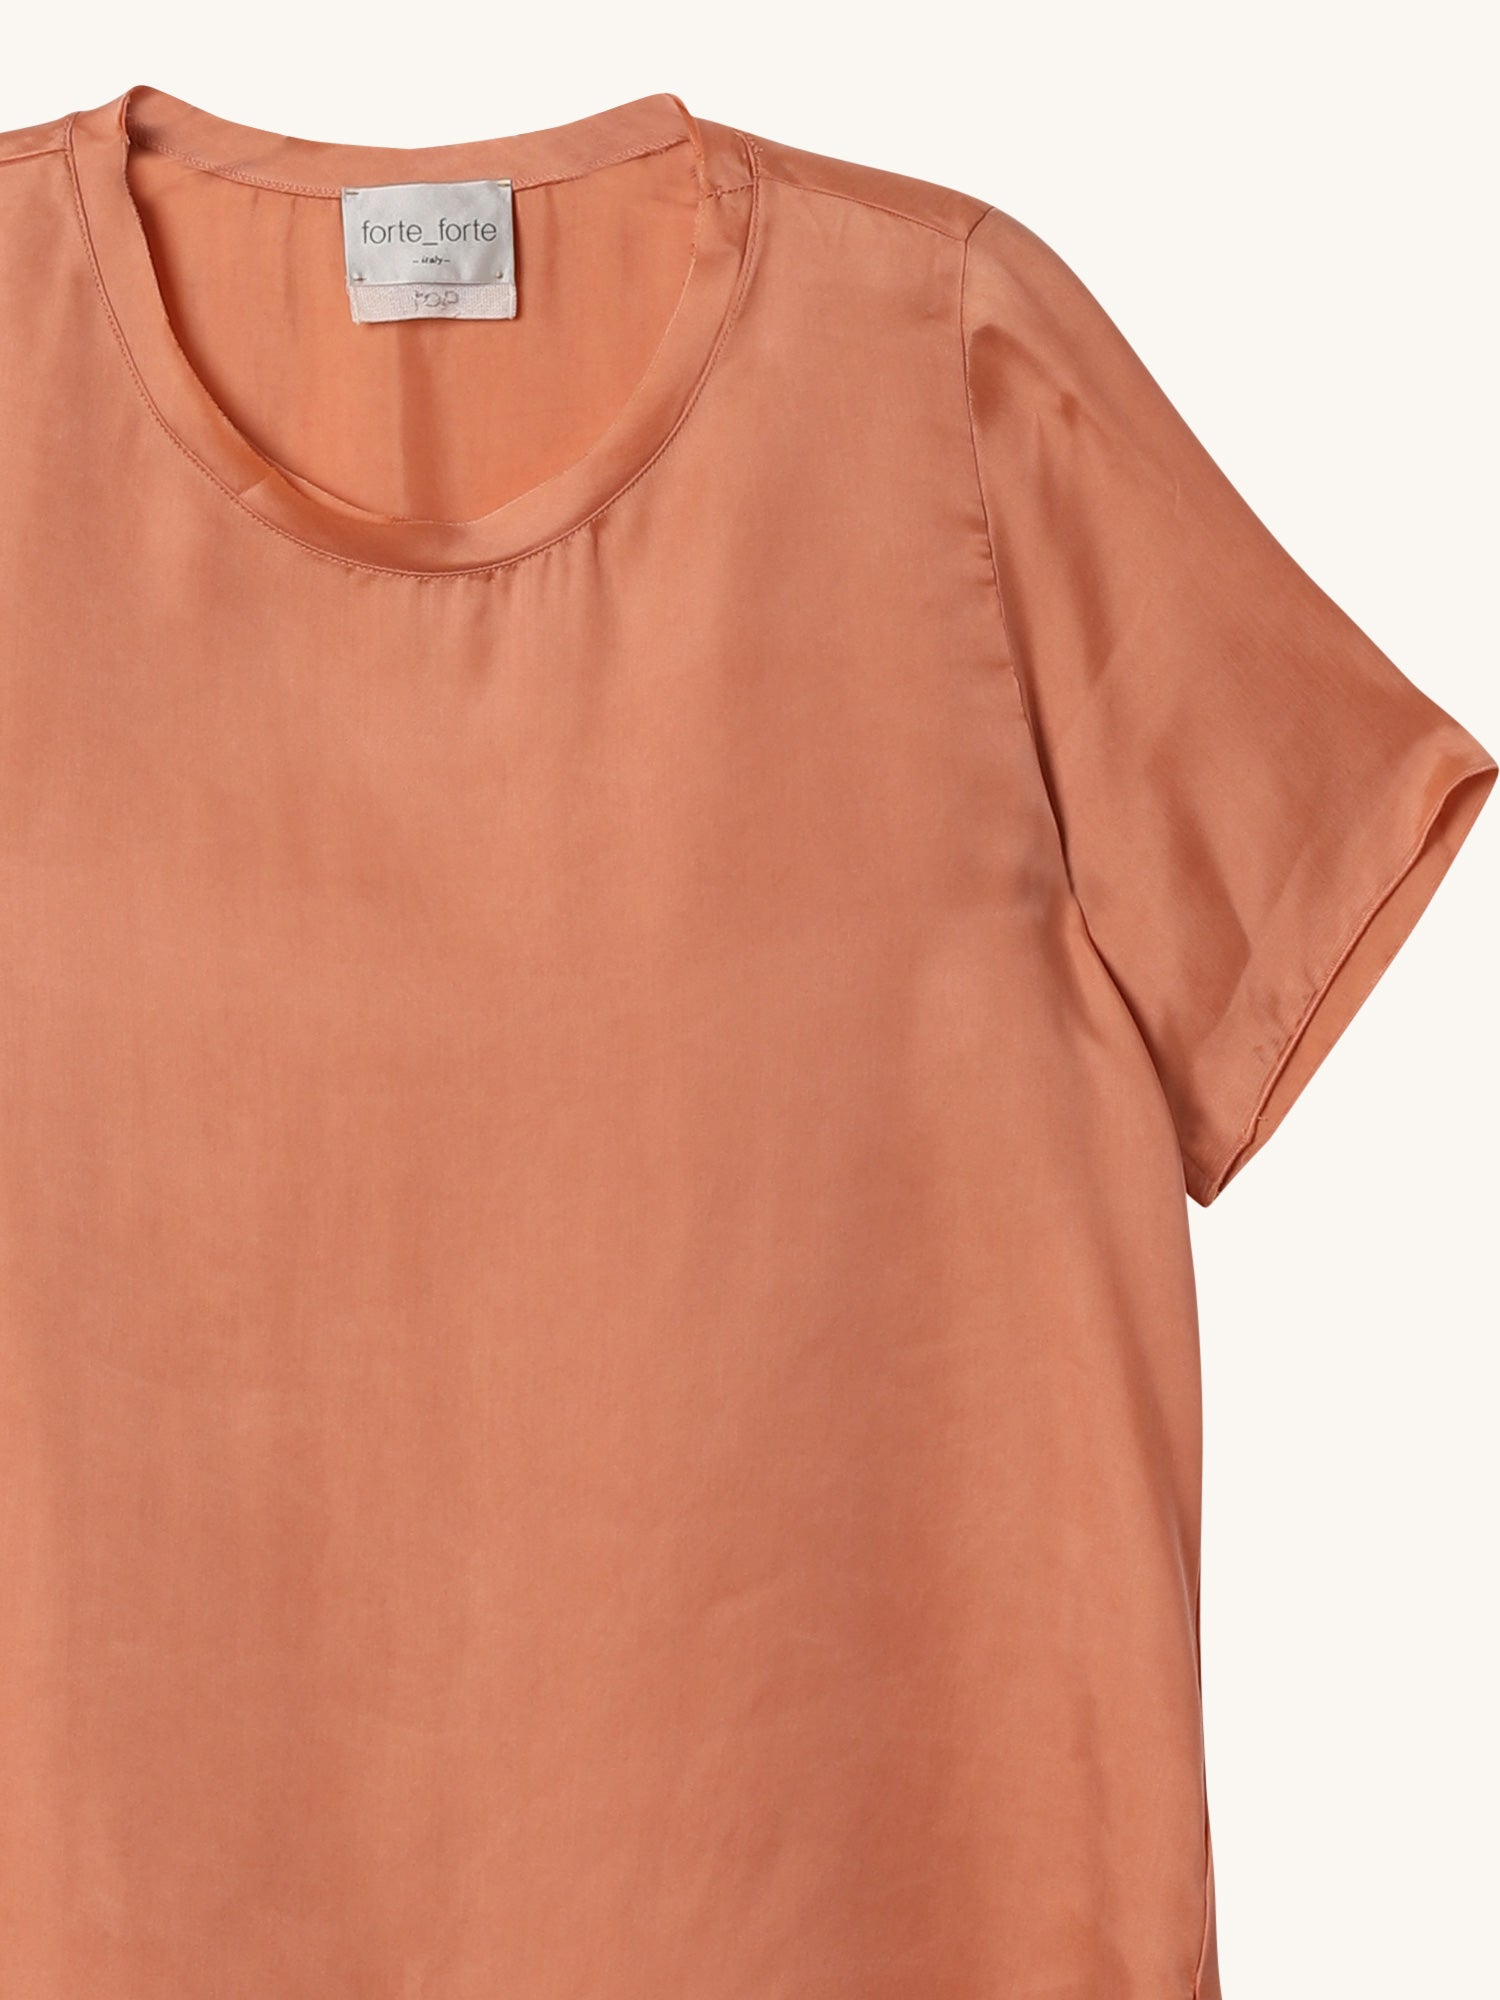 Chic Satin T-Shirt in Cameo